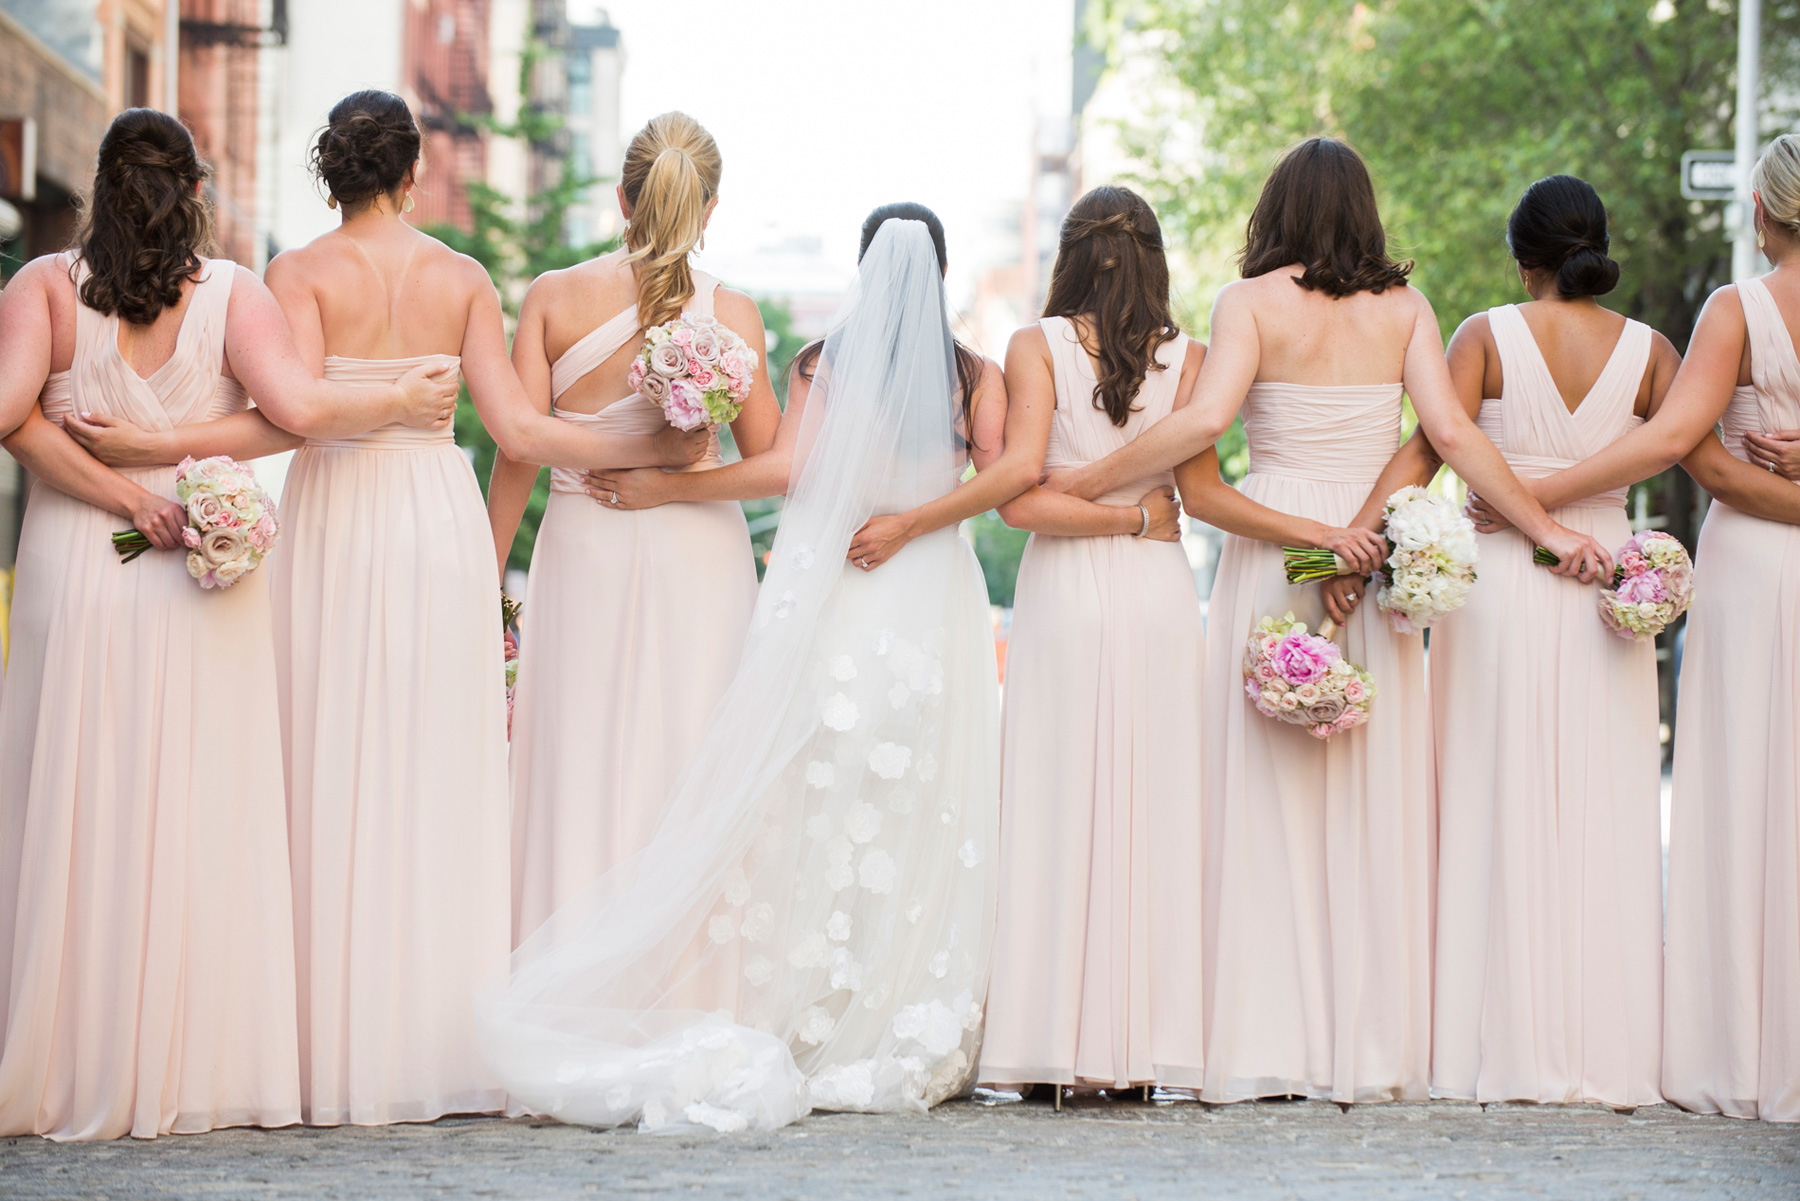 Back of bridesmaids different dresses same color pink